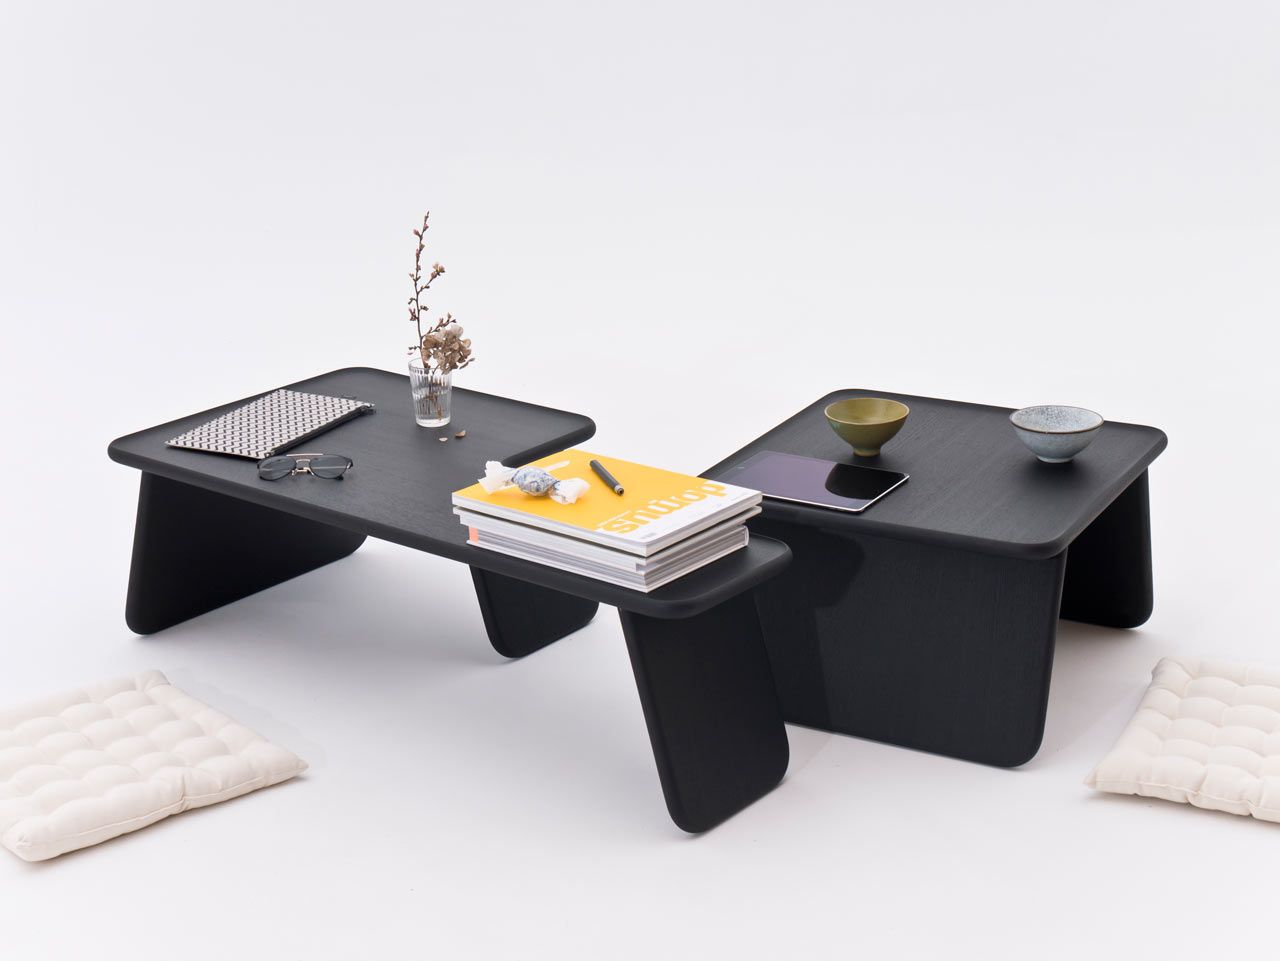 Bento Tray Low Stacking Tables Inspired By Asian Floor Culture